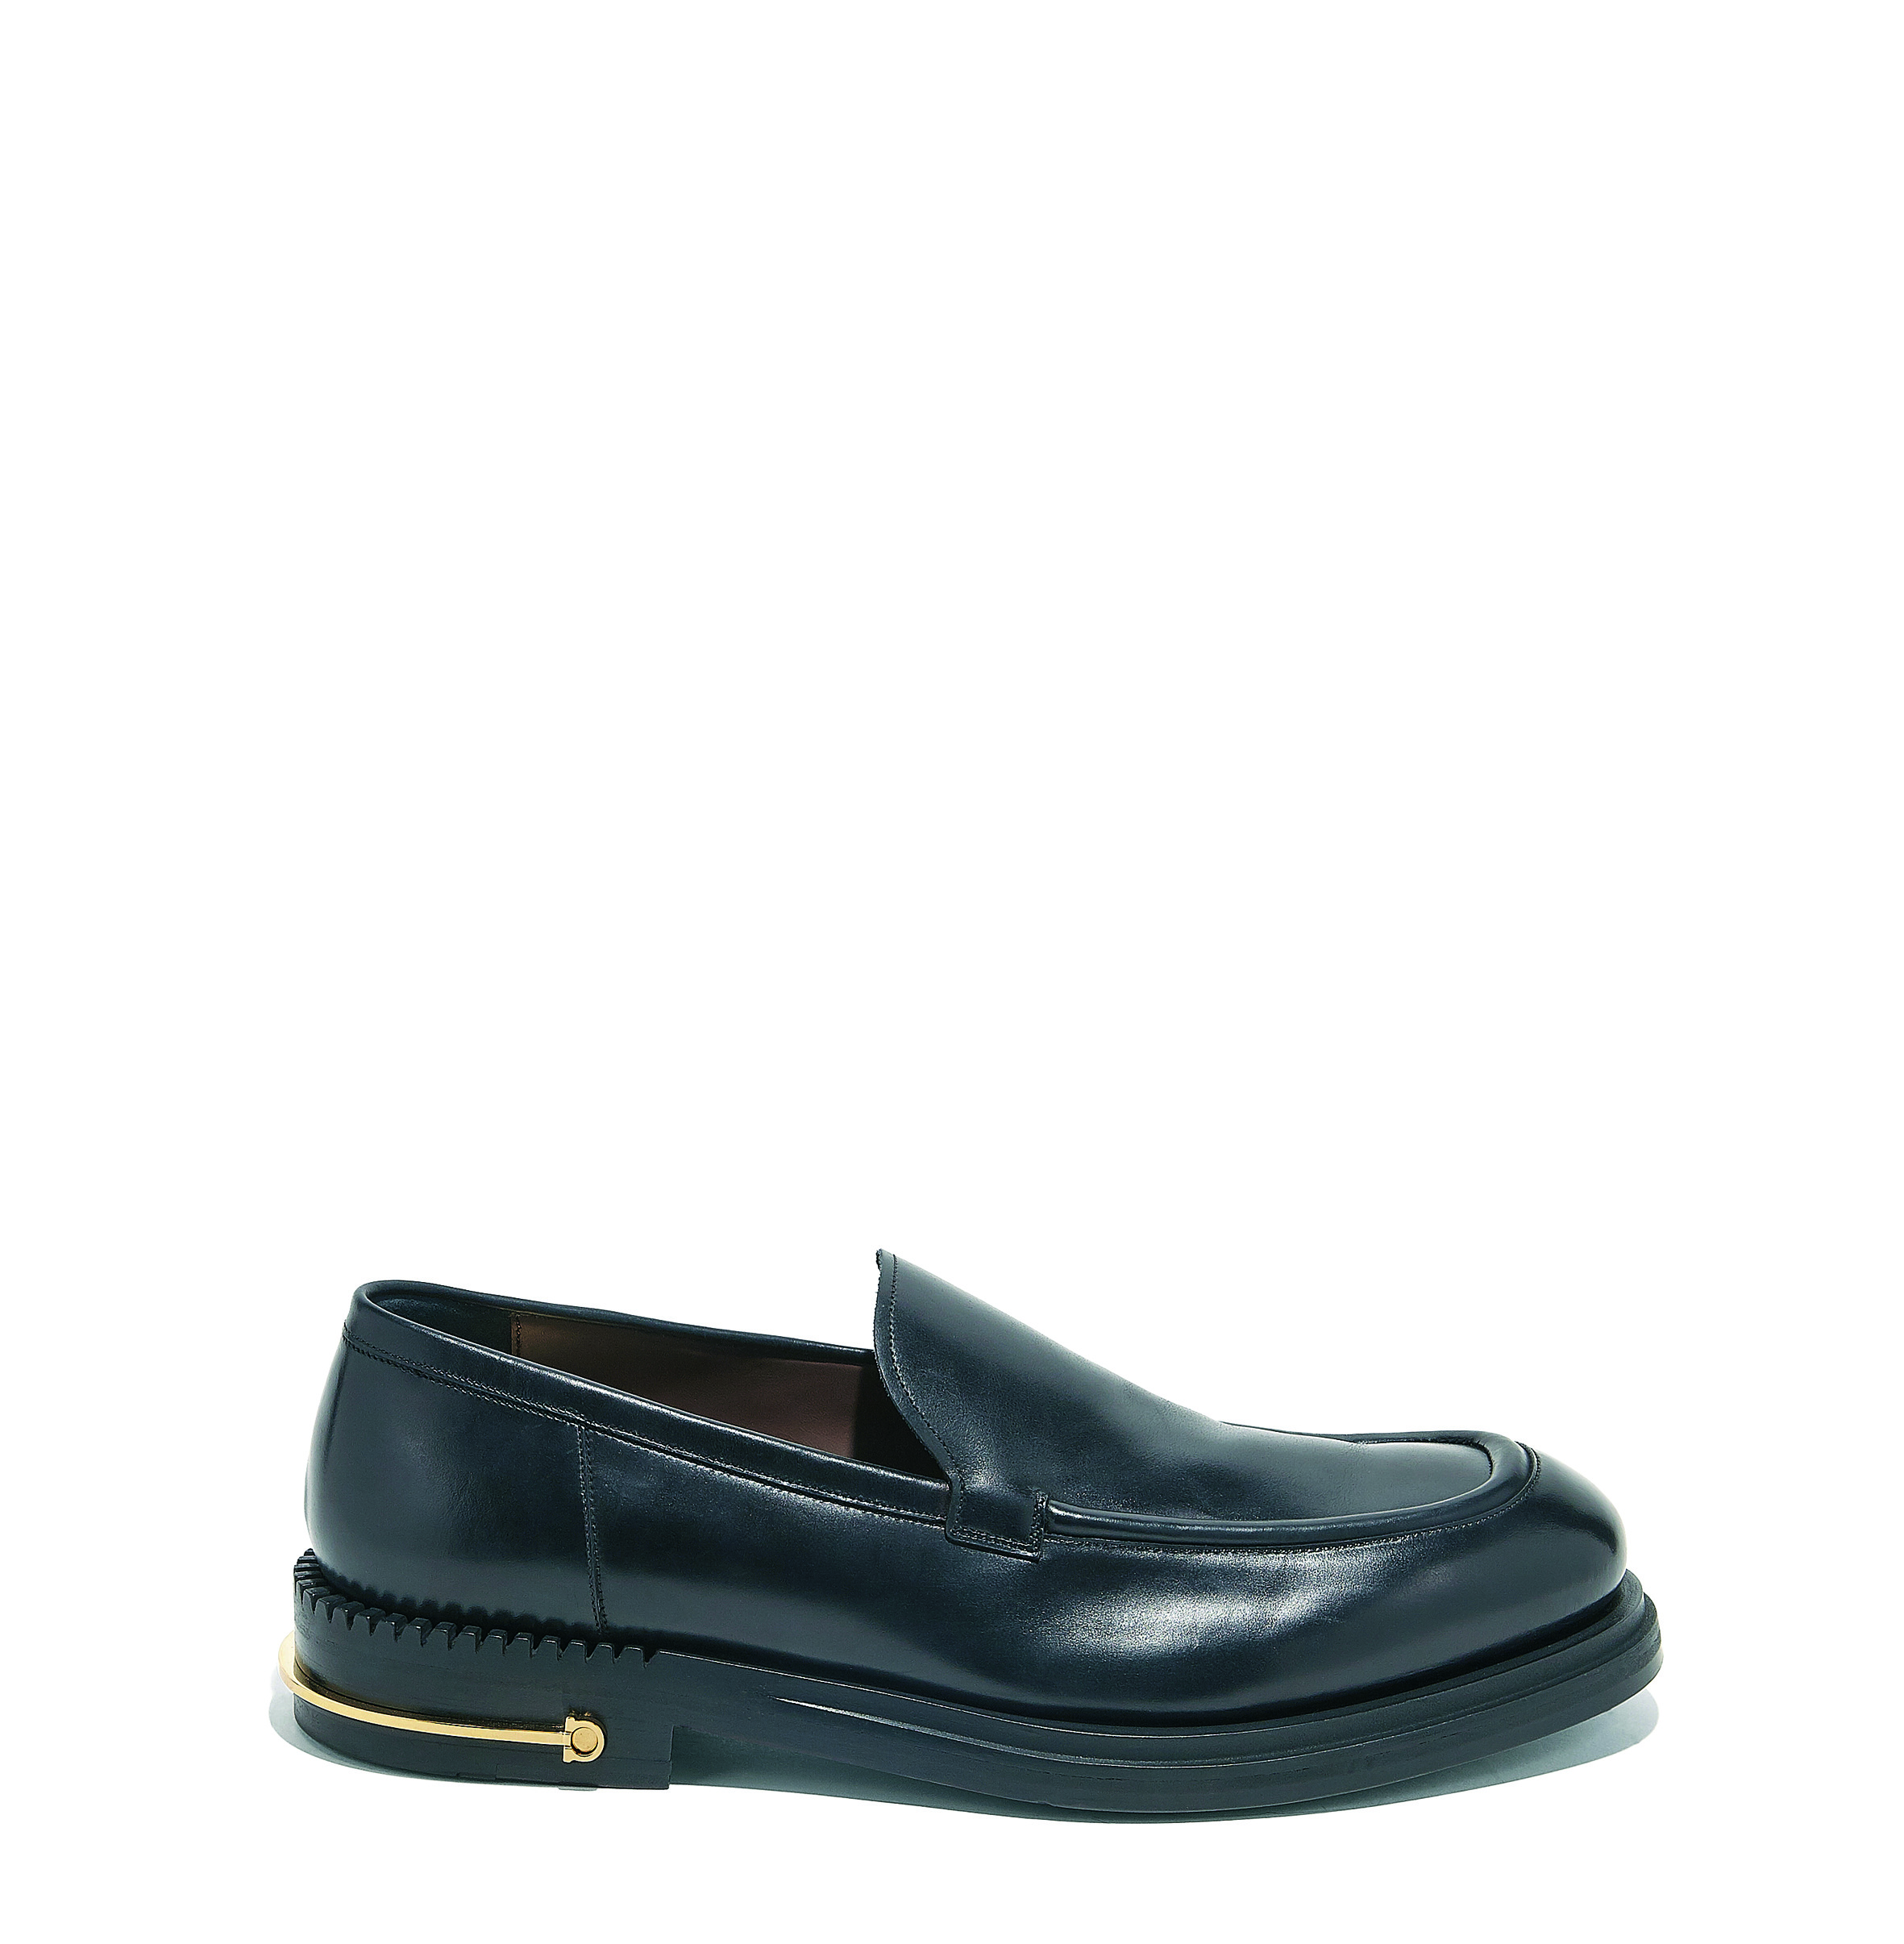 Salvatore Ferragamo GANCINI LOAFER